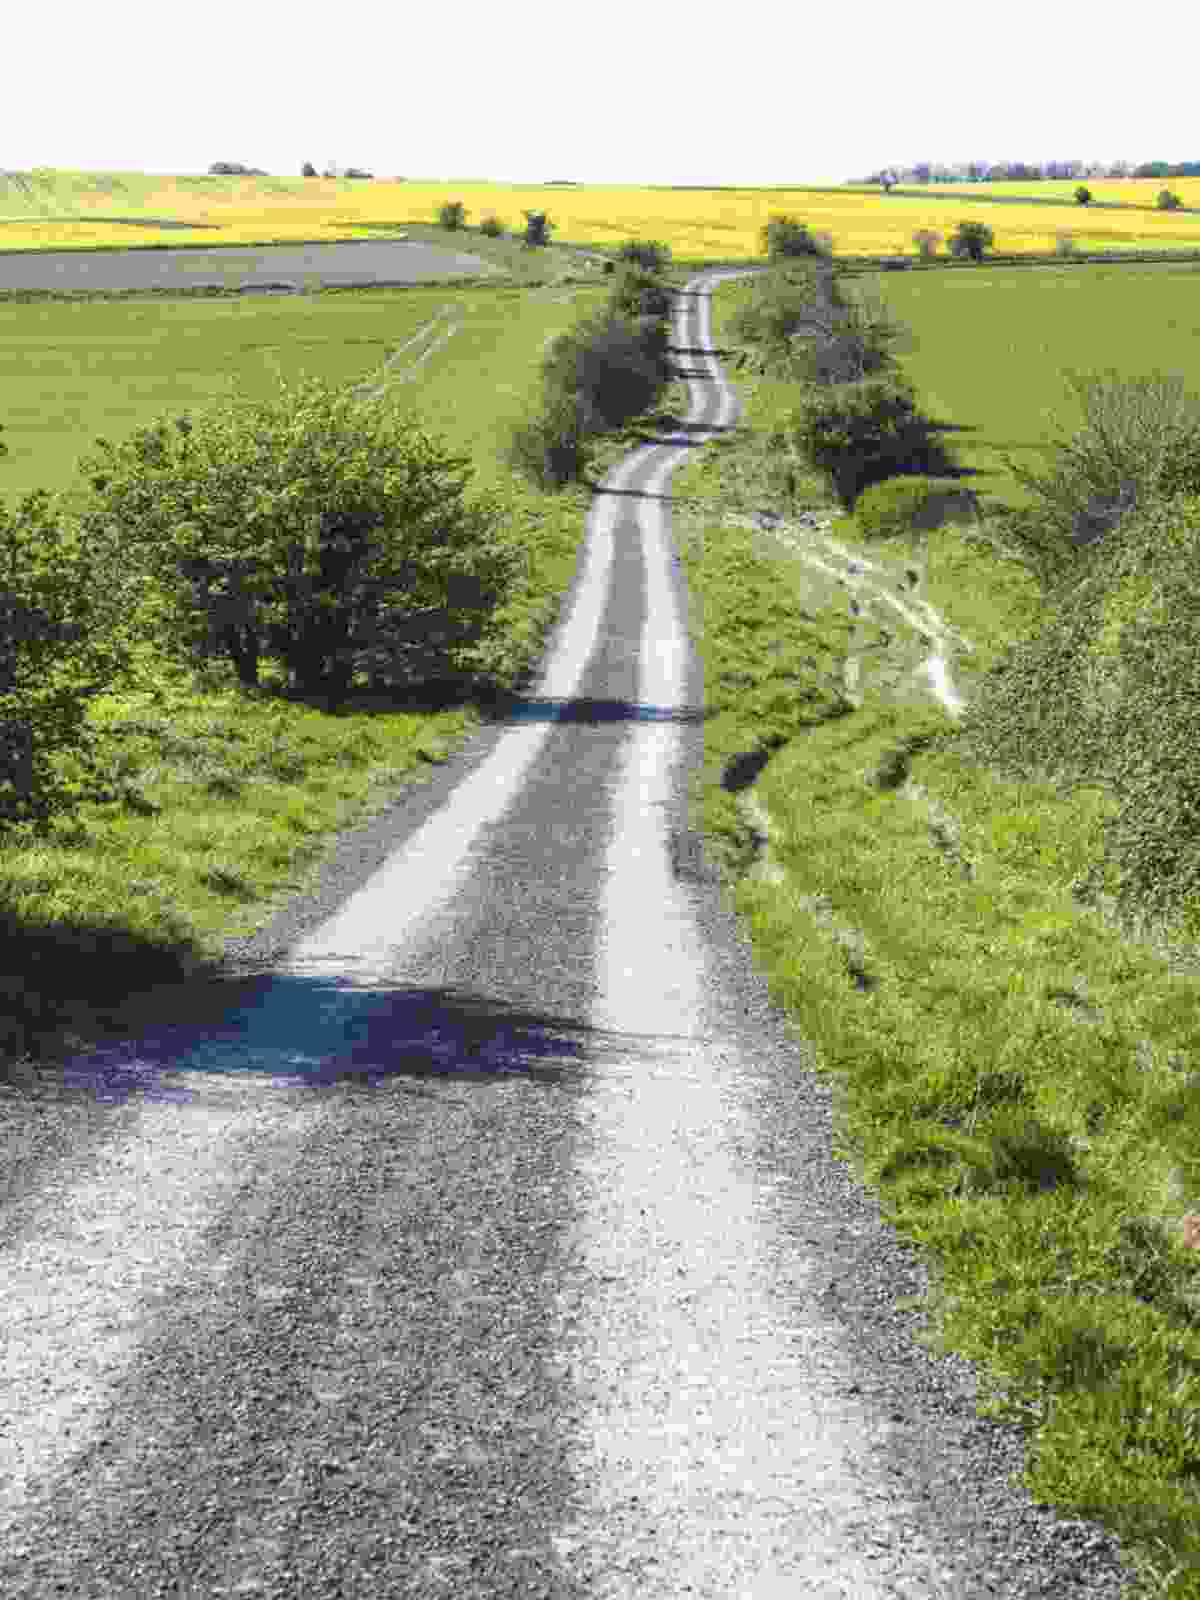 Old country lane in Wiltshire (Jack Thurston)